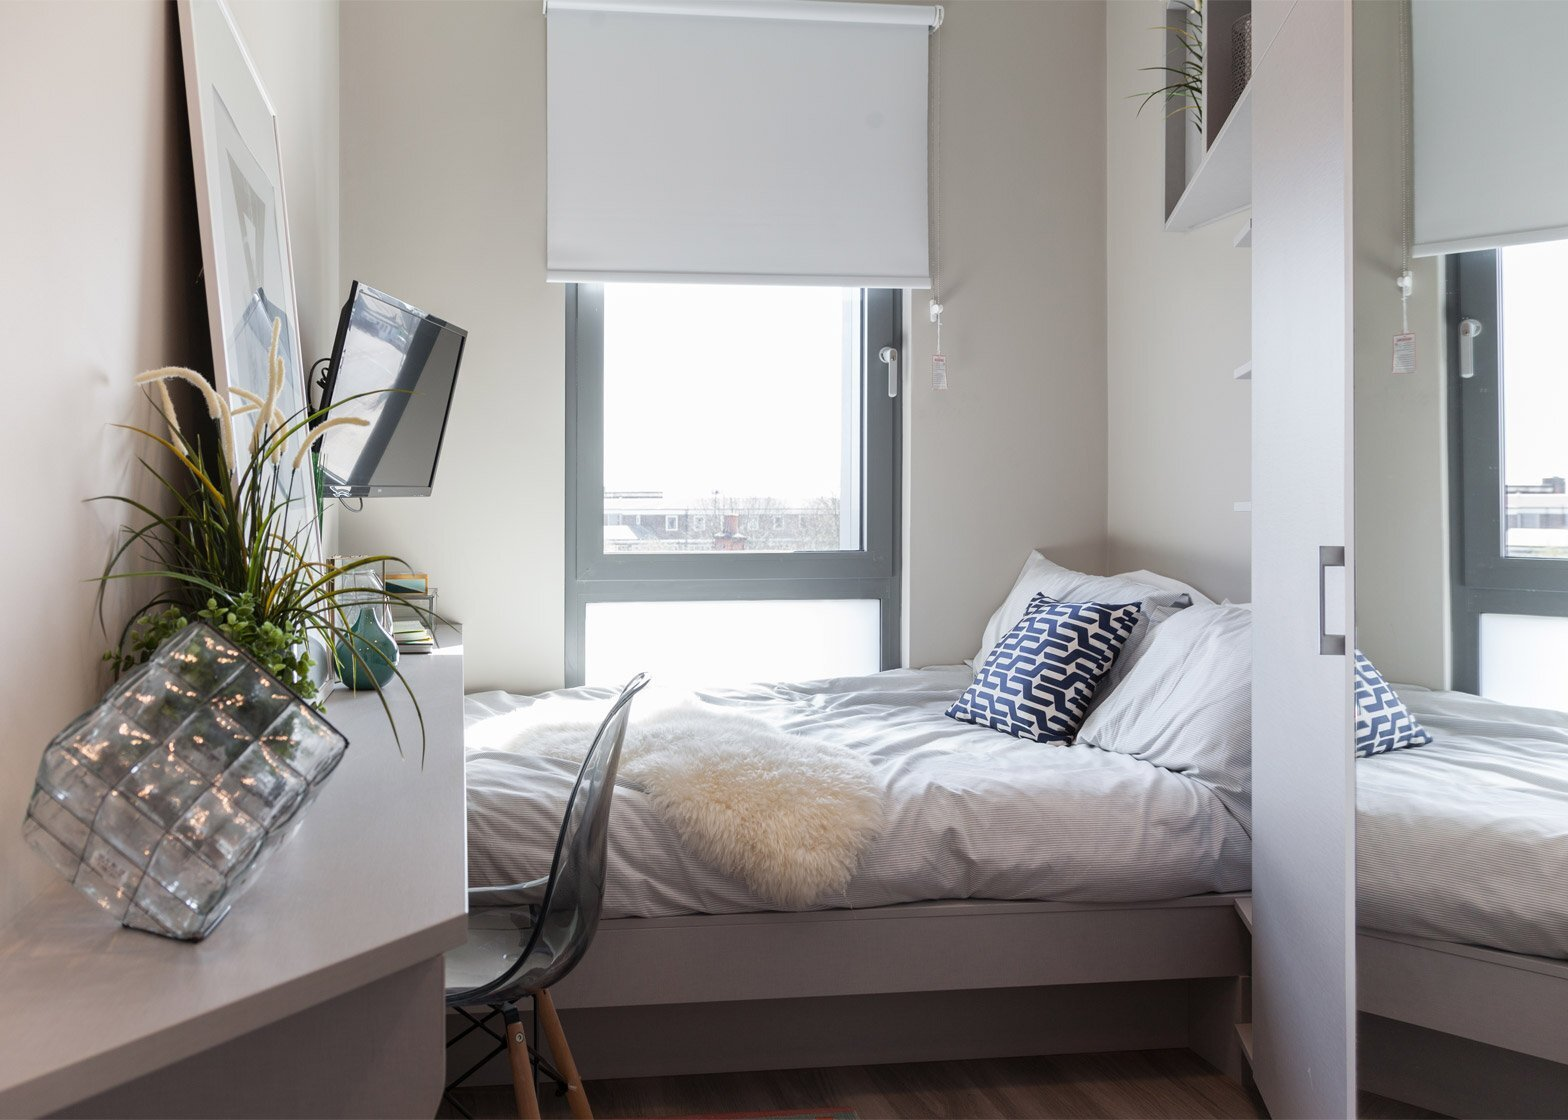 Shared Housing - The Collective Old Oak - London - Bedroom - Humble Homes